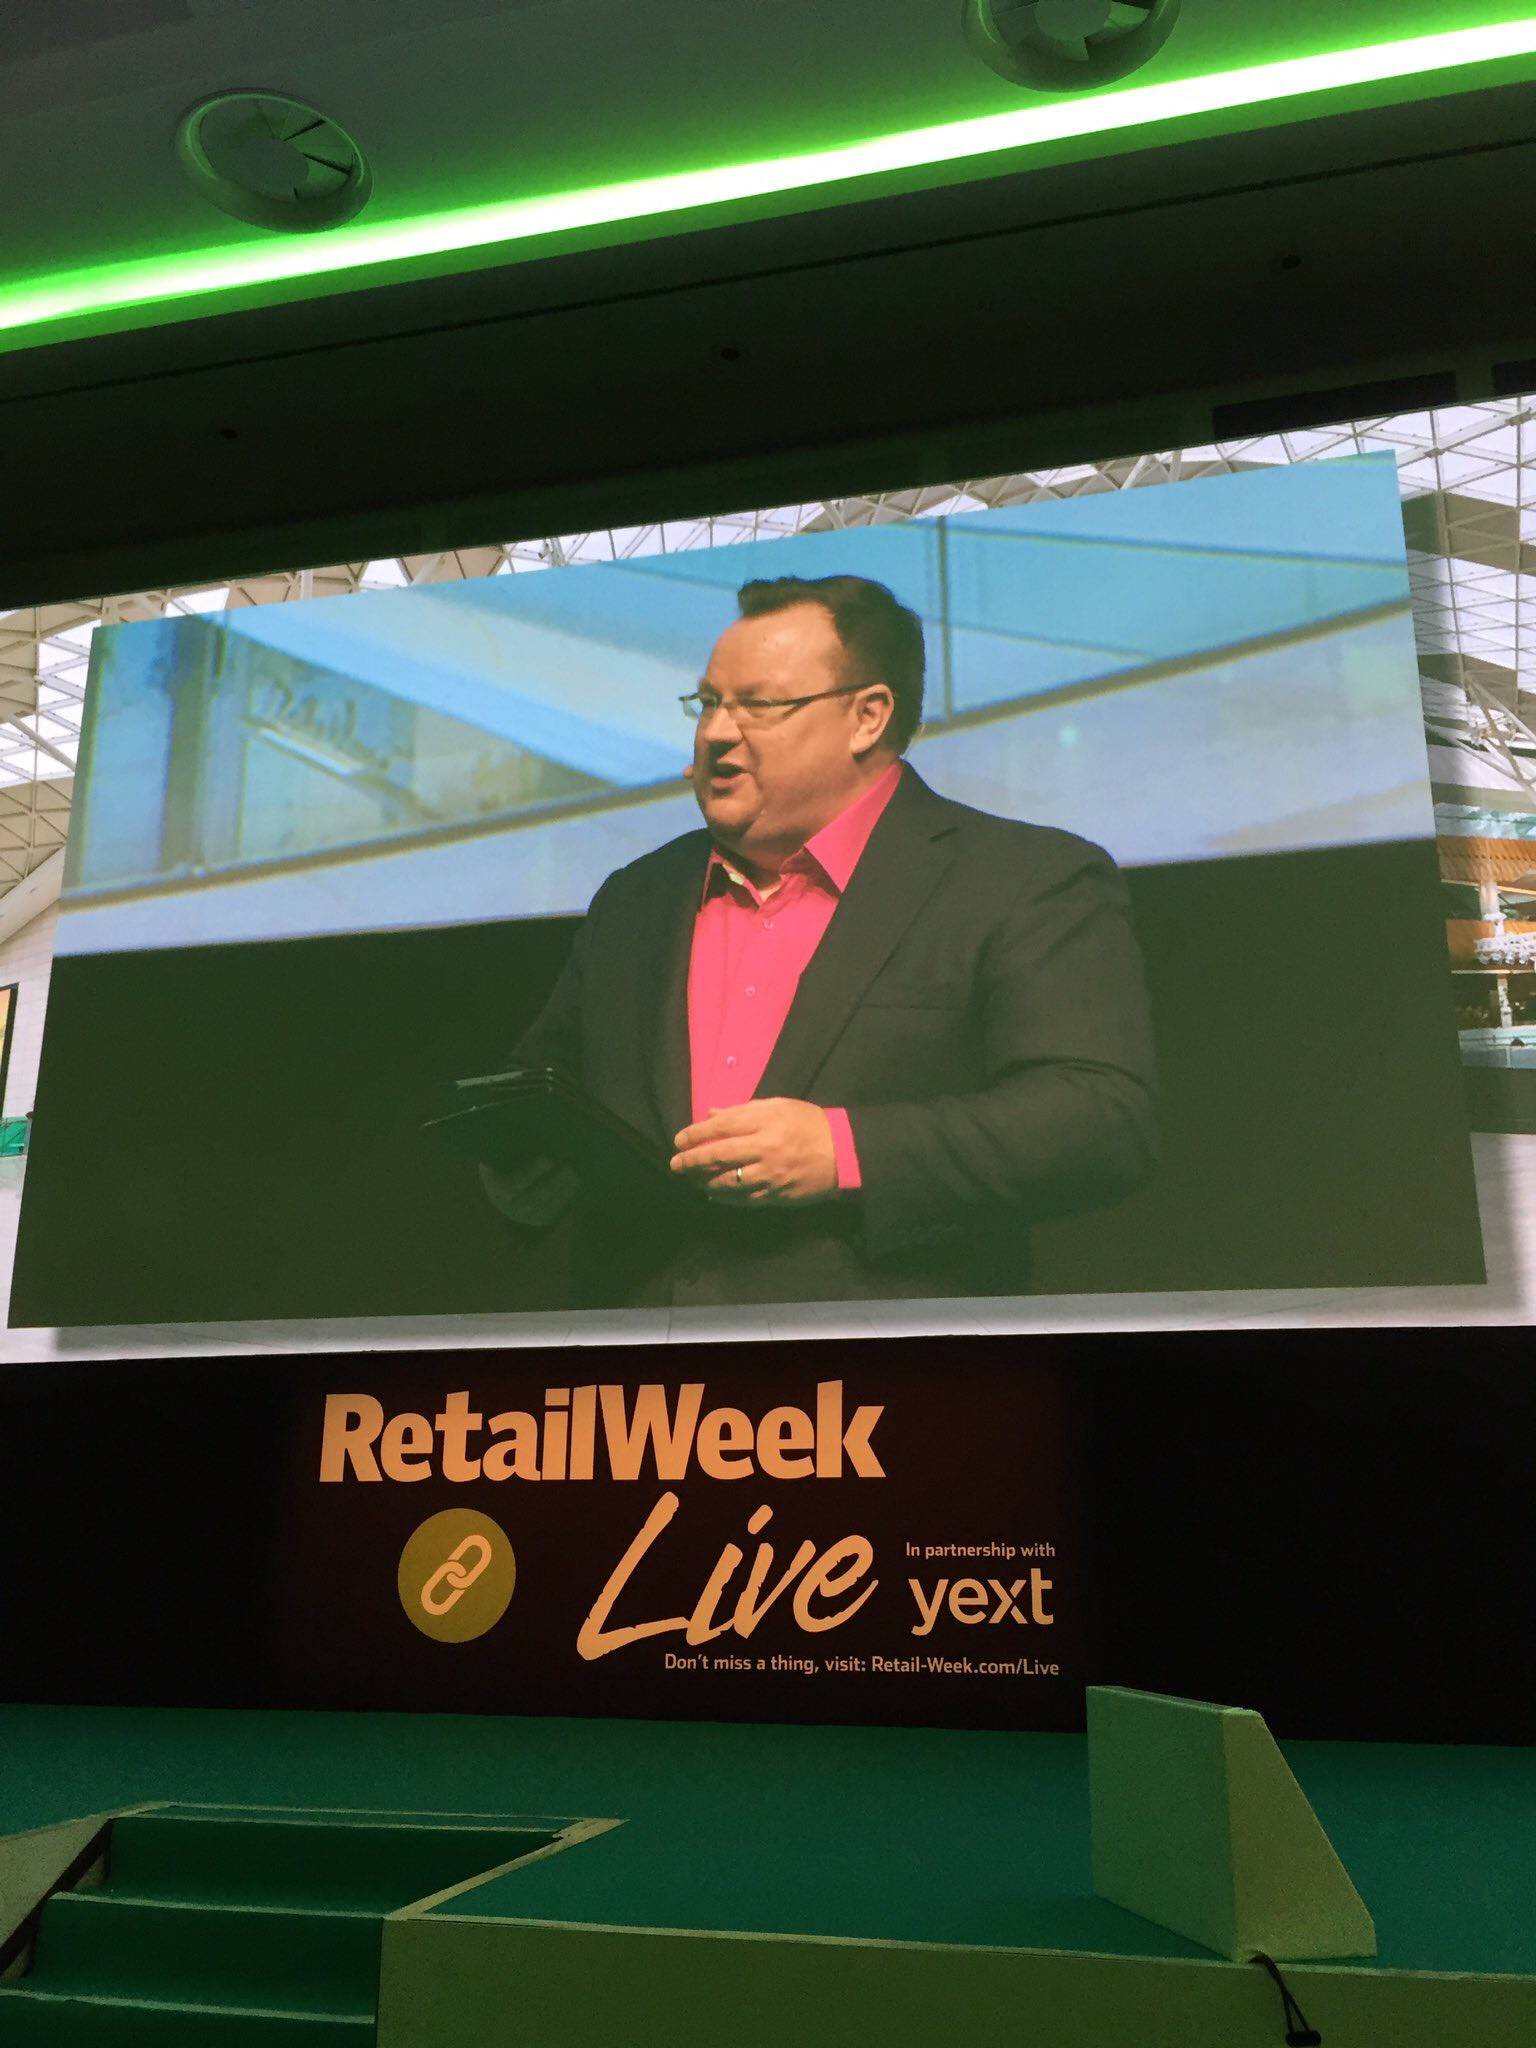 Declan Curry chairs Retail Week Live 2017 to interview the most interesting characters, moderate panel discussions and introduce and question the biggest names, including leaders from Sainsbury's, Boots and Tesco.